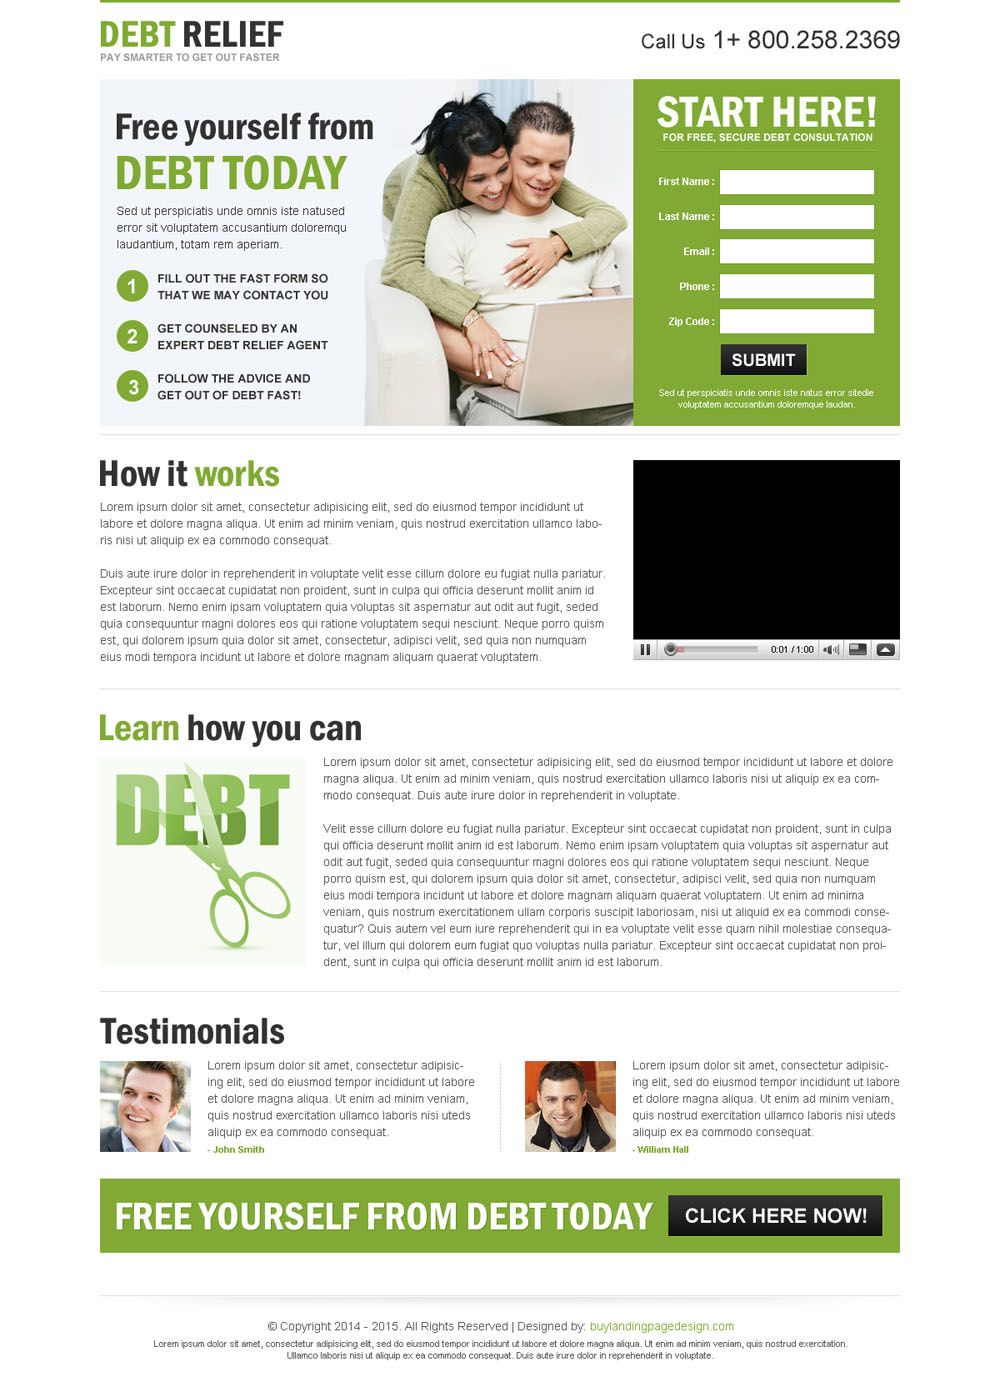 Clean Converting Debt Relief Responsive Lead Capture Landing Page Design Templates Debt Relief Debt Relief Programs Landing Page Design